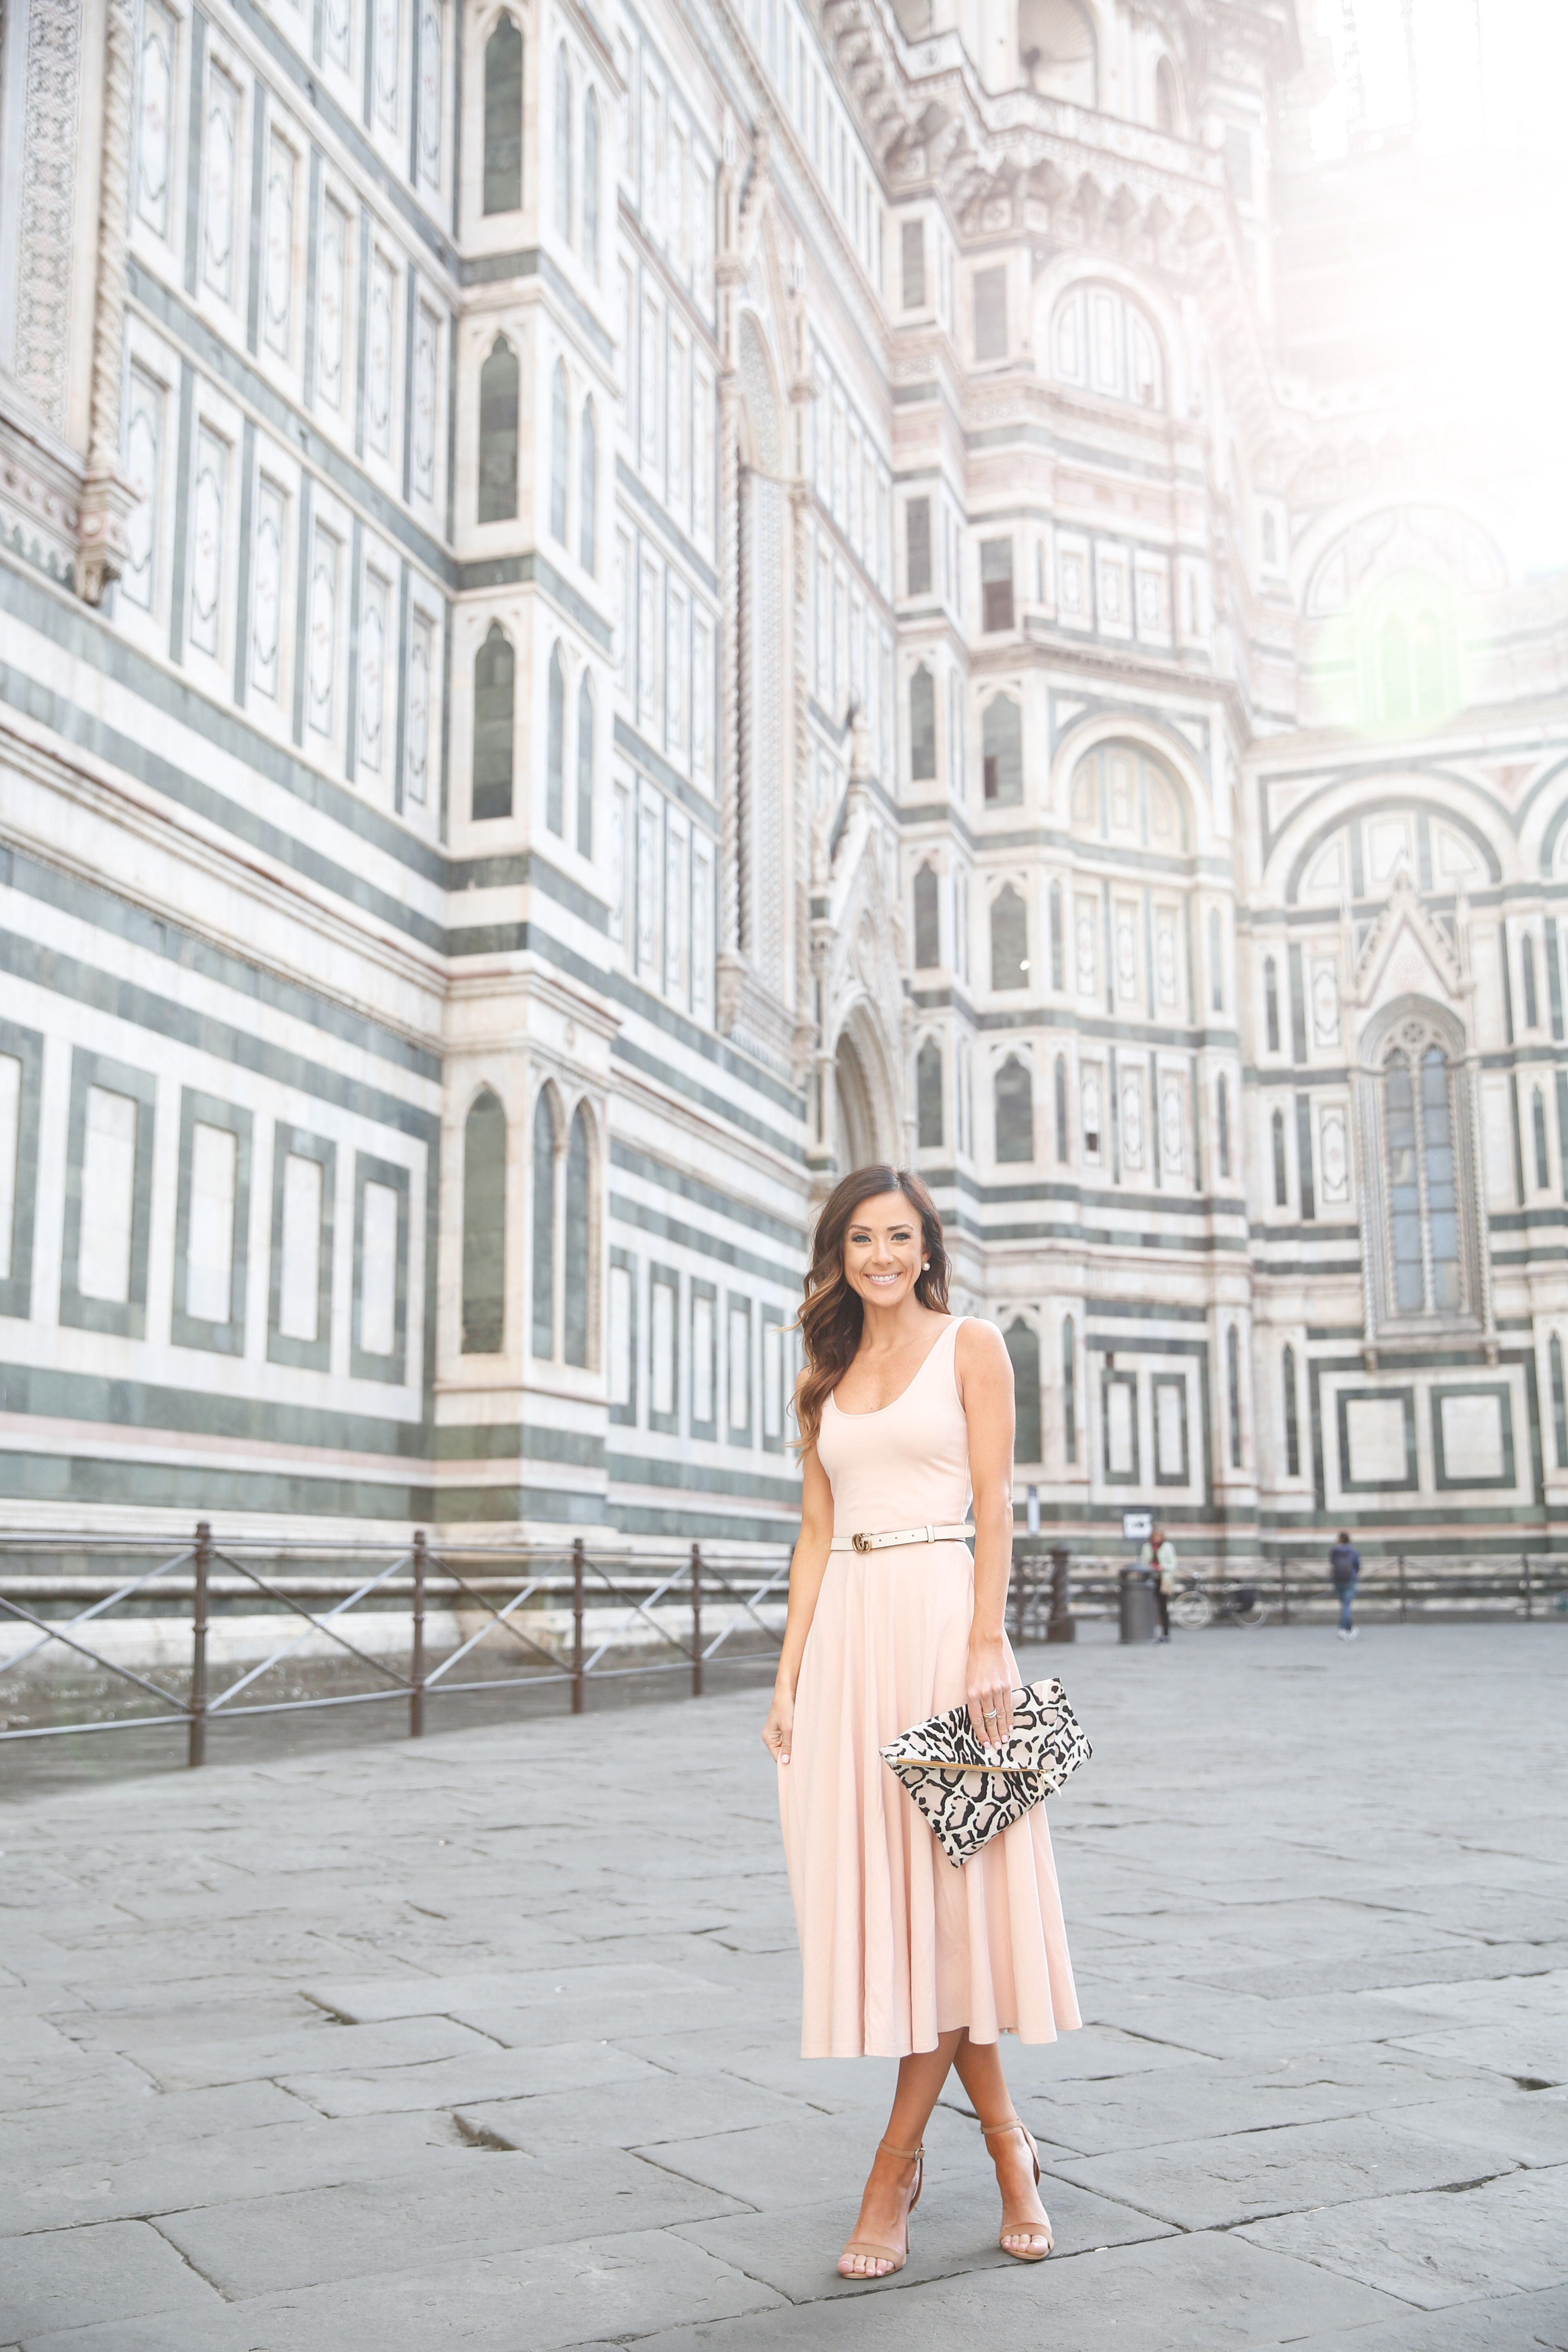 florence, the duomo, pink dress, summer style